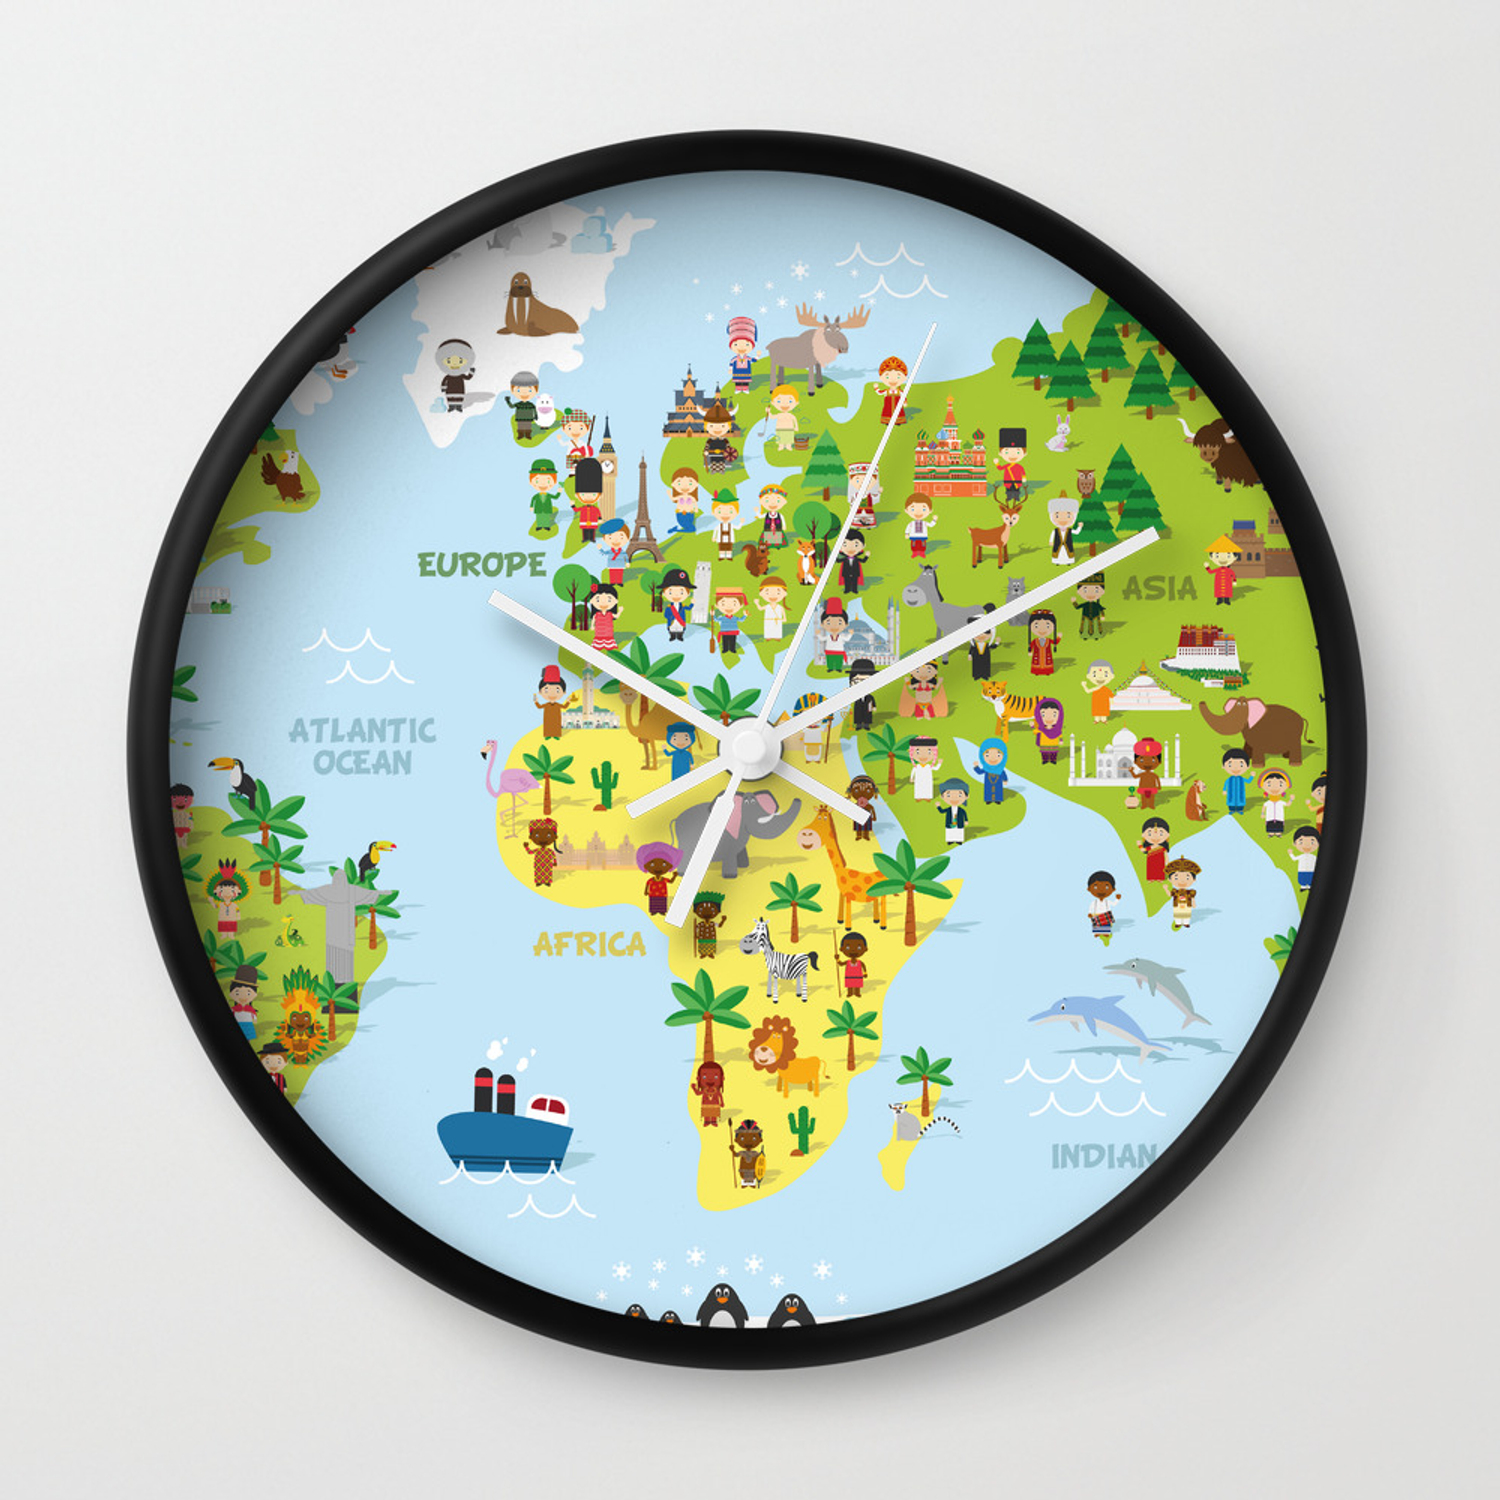 Funny cartoon world map with childrens of different nationalities, on different world flags, different countries of the world, different boxes, different governments of the world, different mountains, types of maps, different flowers, thematic map, mappa mundi, different map projections, topographic map,